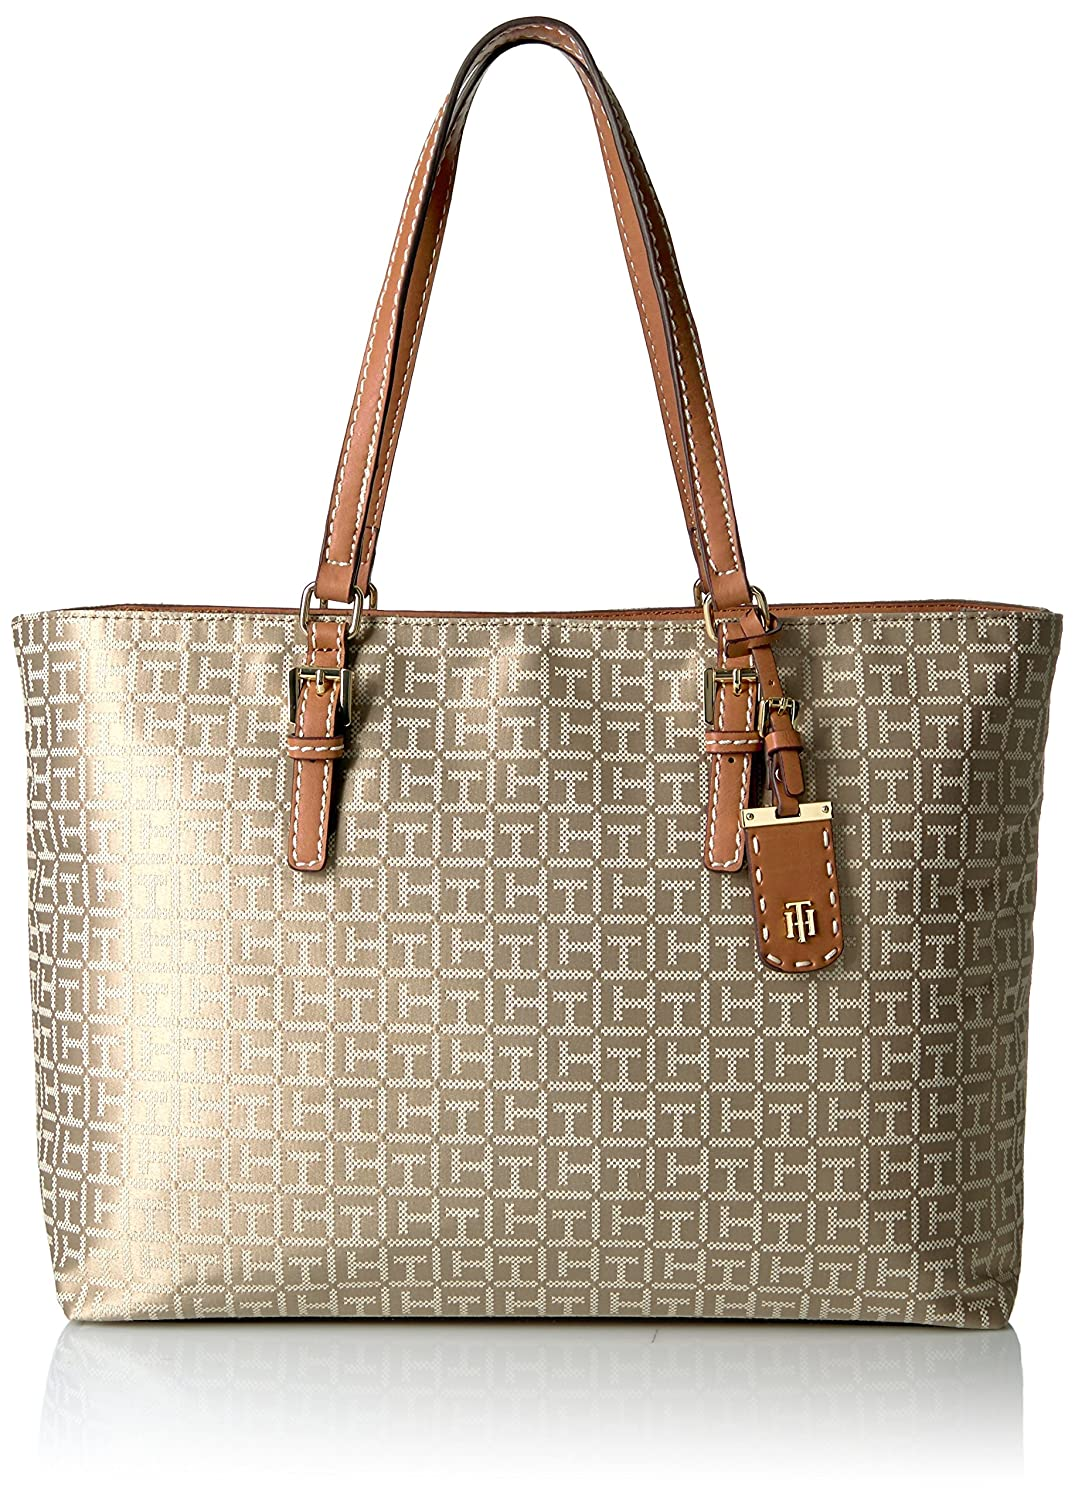 bc0fdee72881e Tommy Hilfiger Tote Bag for Women Julia